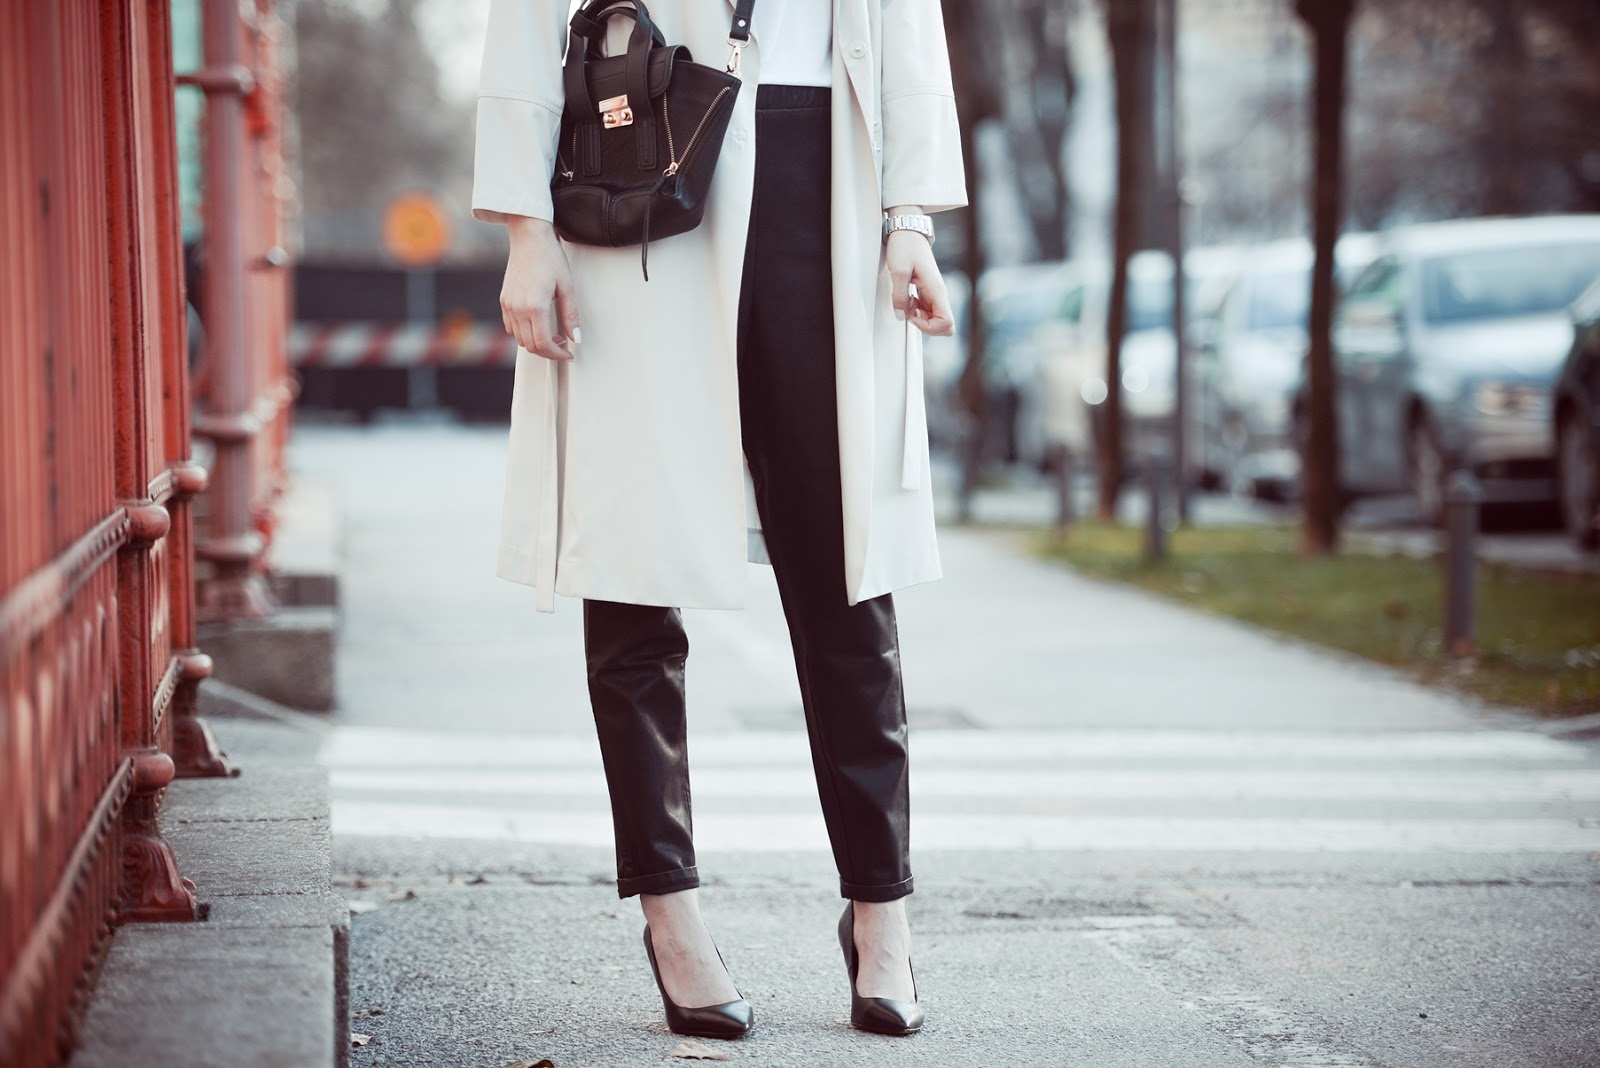 hm extra long nude trench coat, asos leather sweatpants, annaxi mini pashli bag, spring outfit look, style blogger, fashion blogger